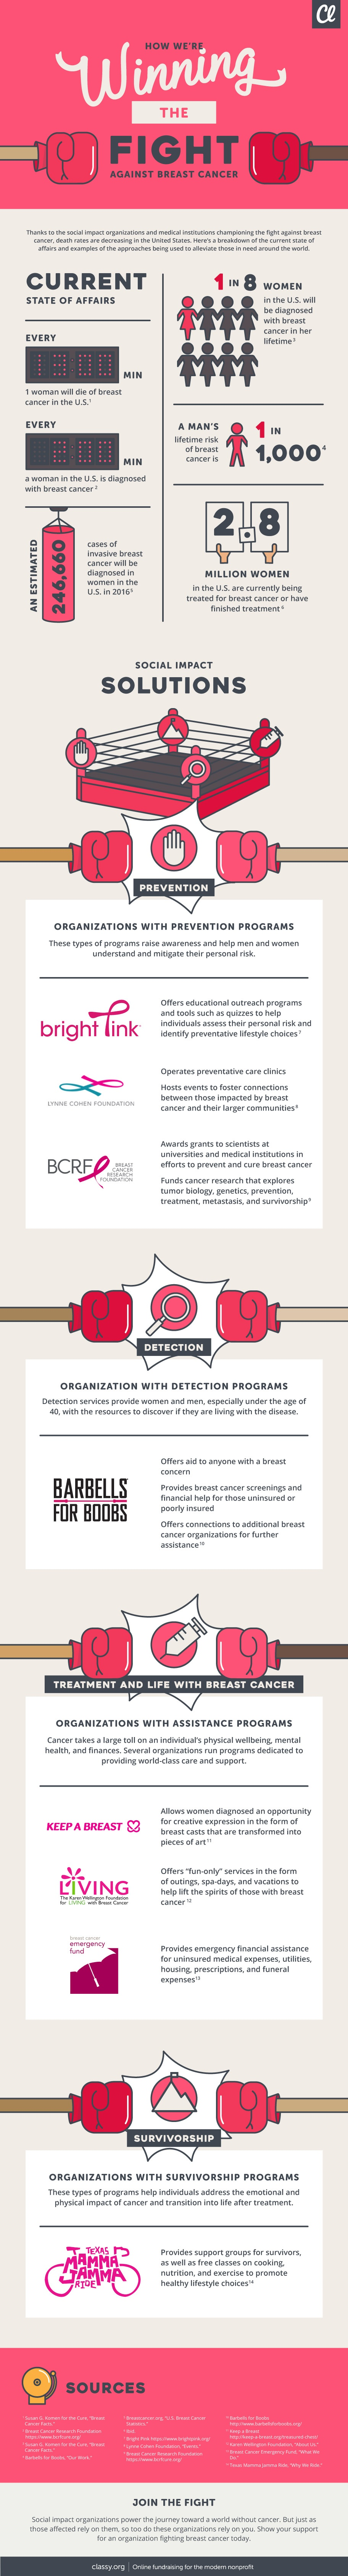 Infographic on how organizations fight breast cancer